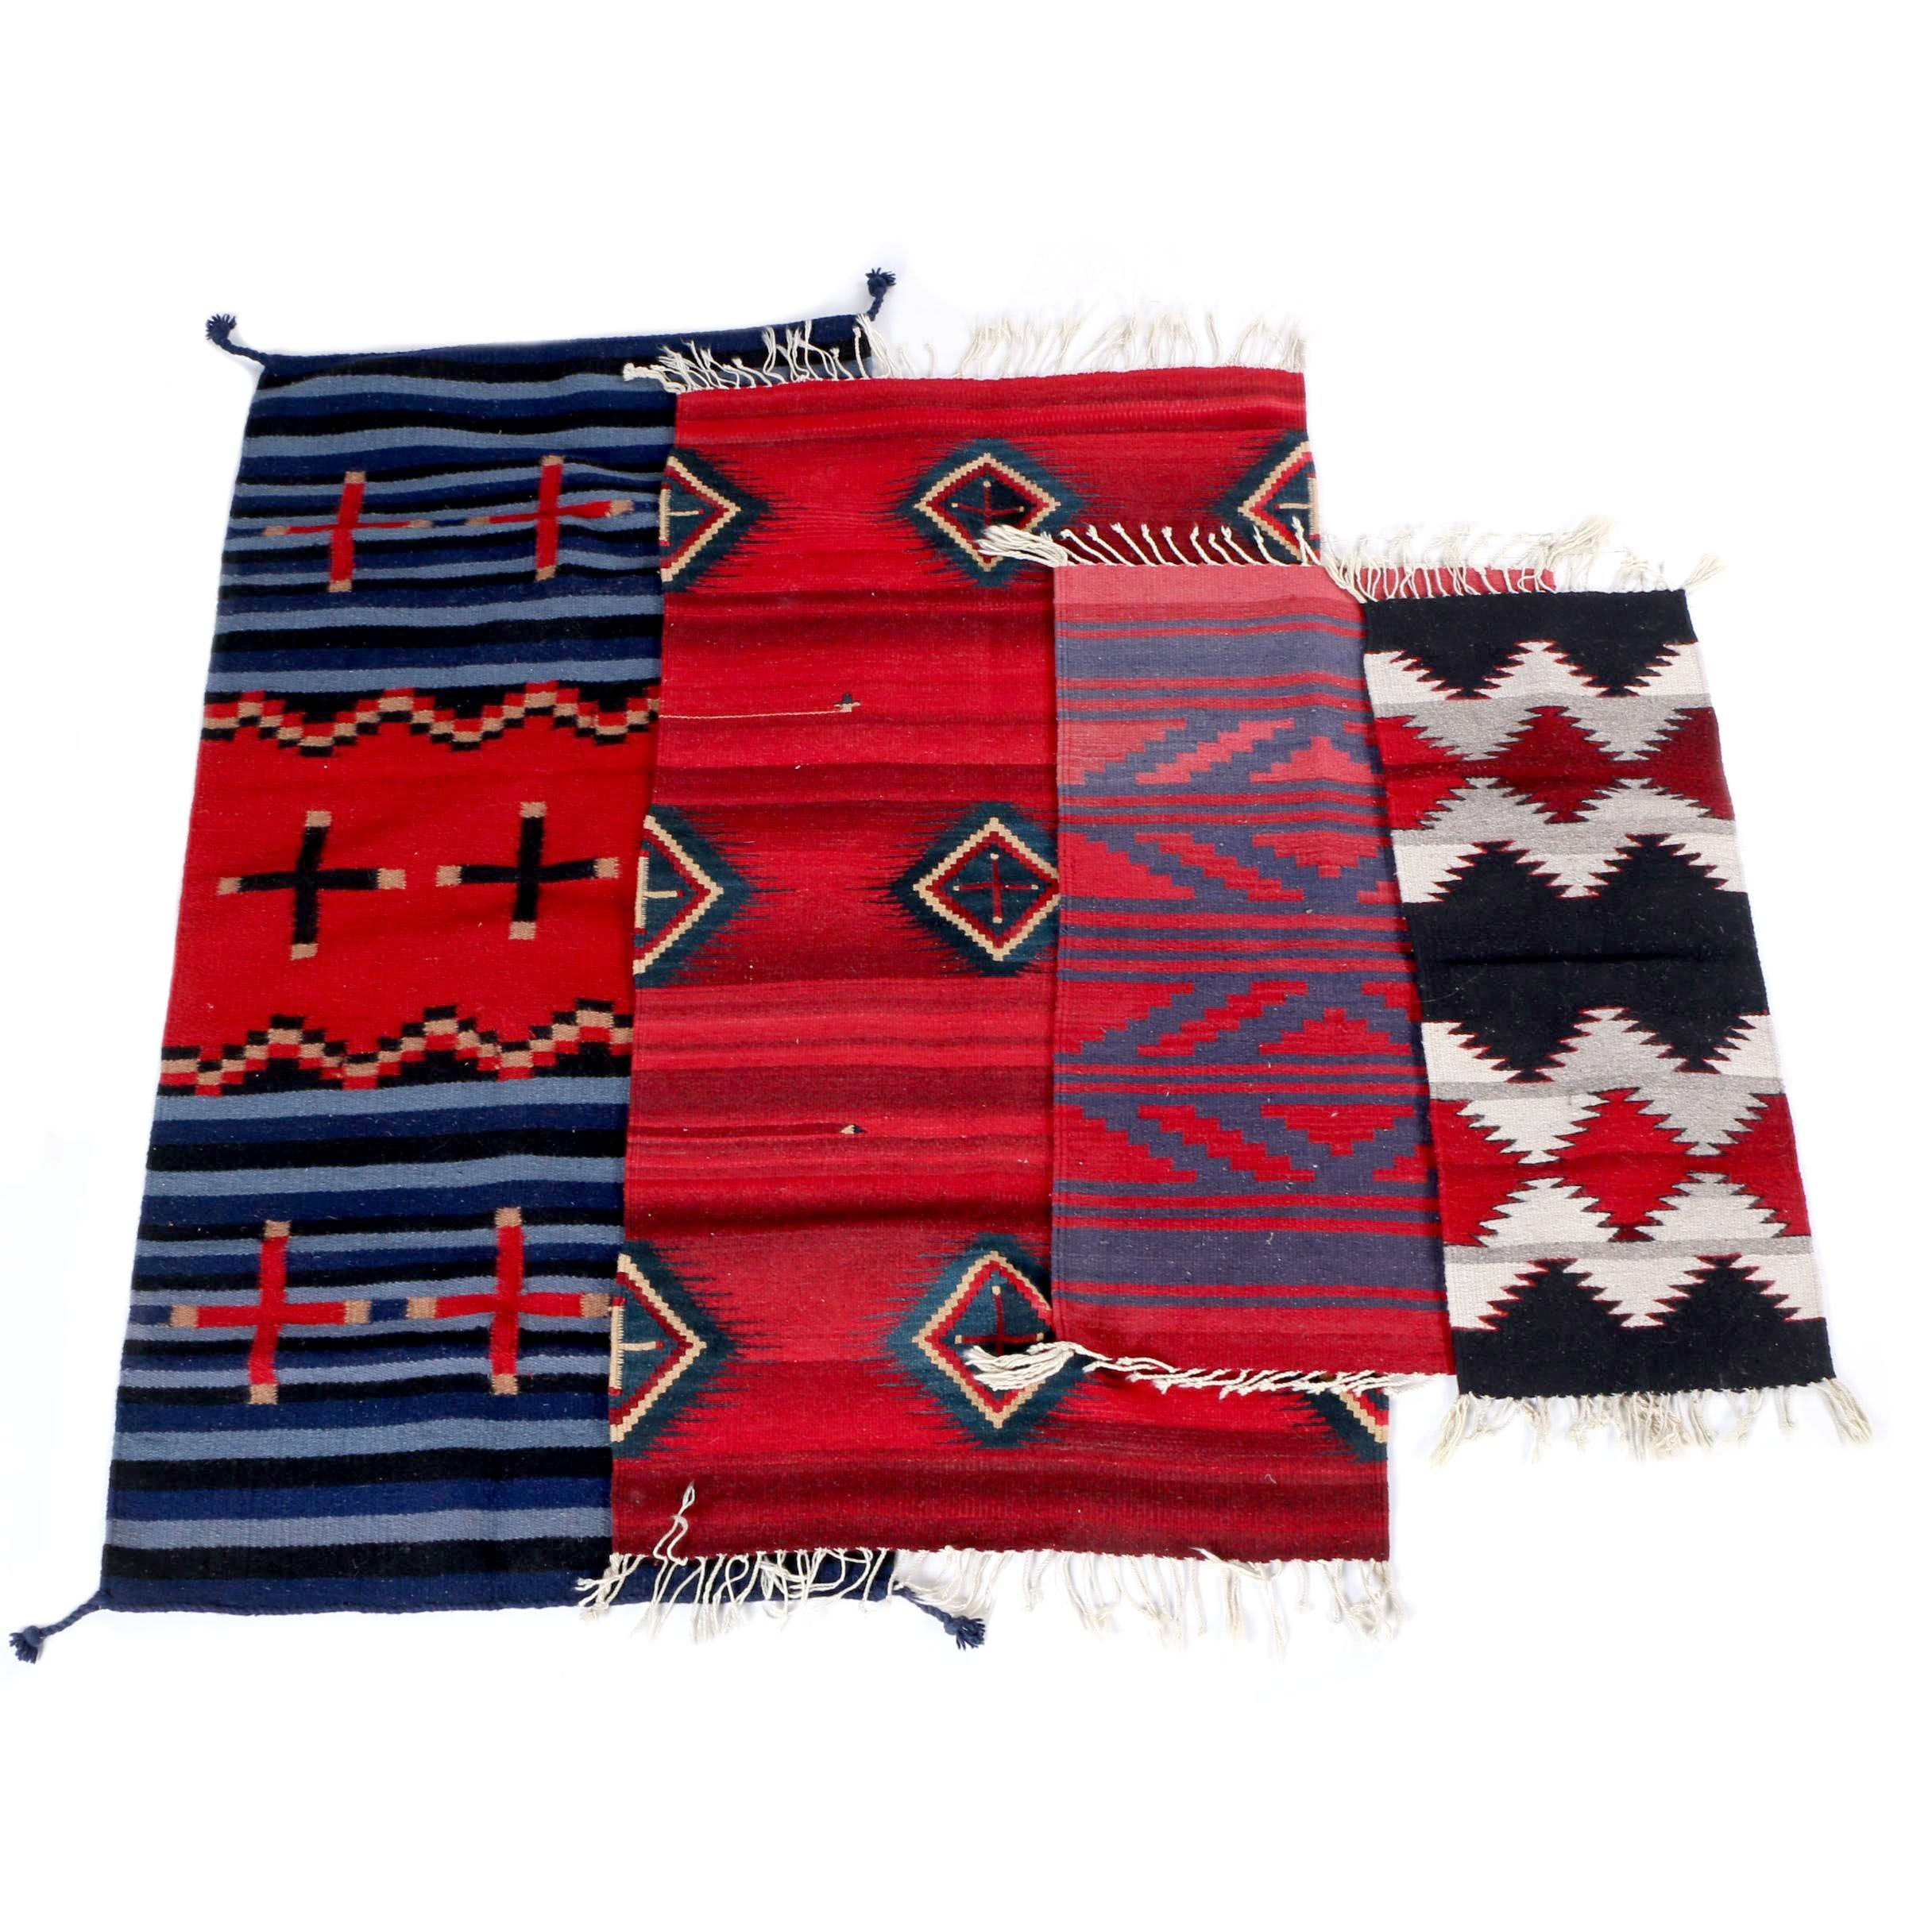 Handwoven Native American-Style Rugs/Wall Hangings